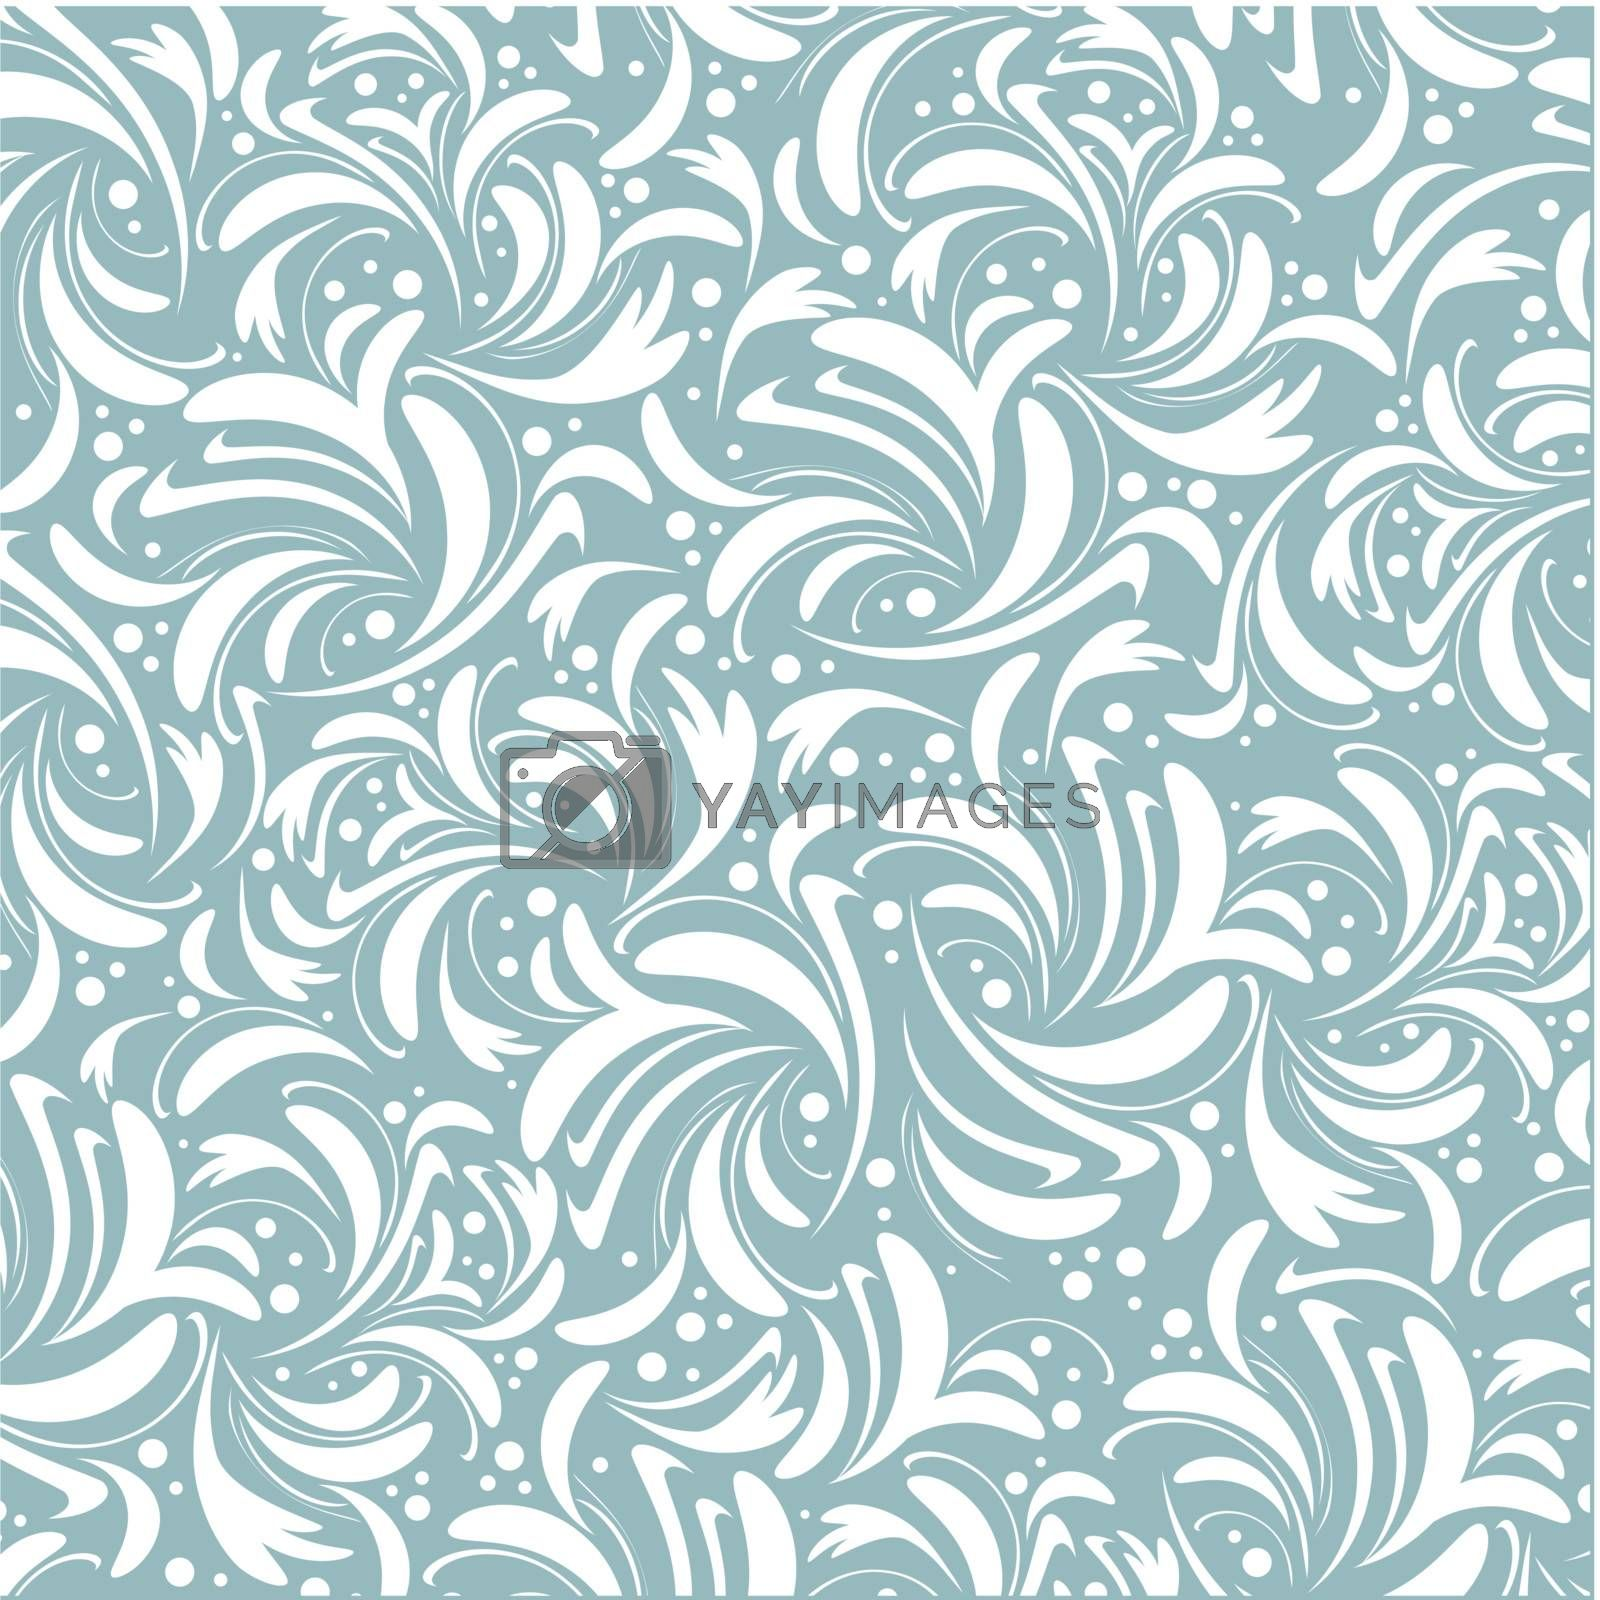 abstract floral background in two tones